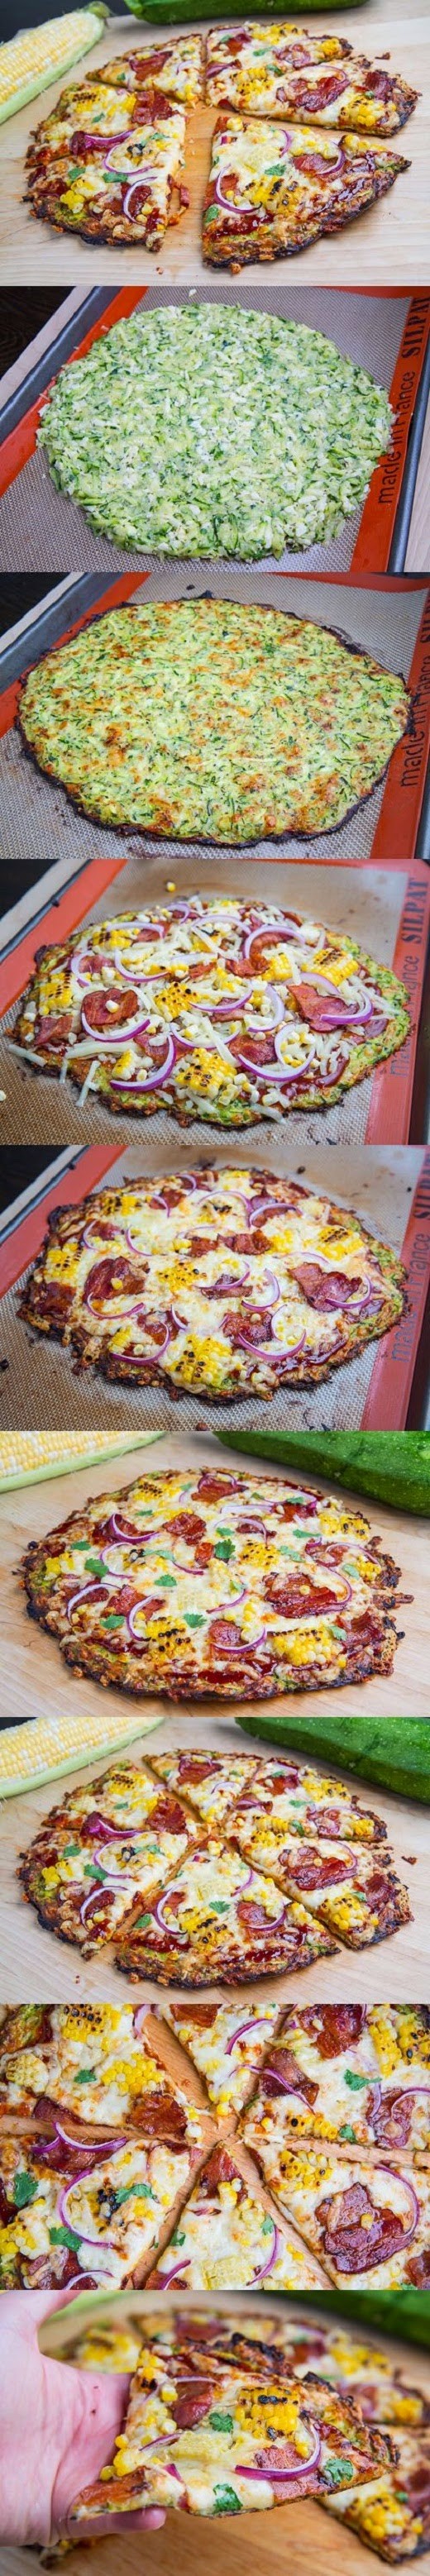 How To Make Zucchini Pizza Crust